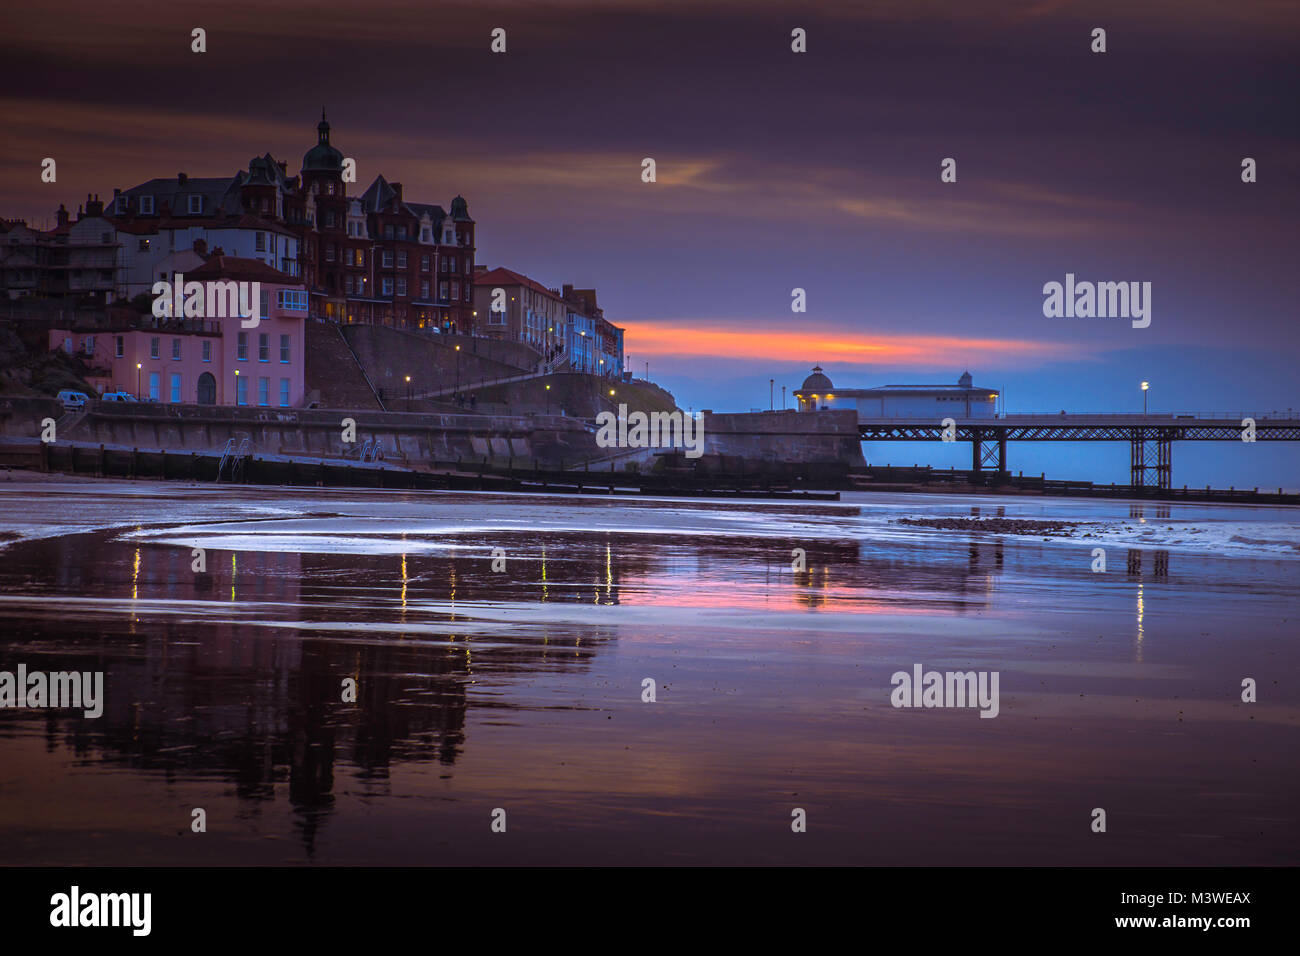 View of Cromer from the beach at sunset. - Stock Image